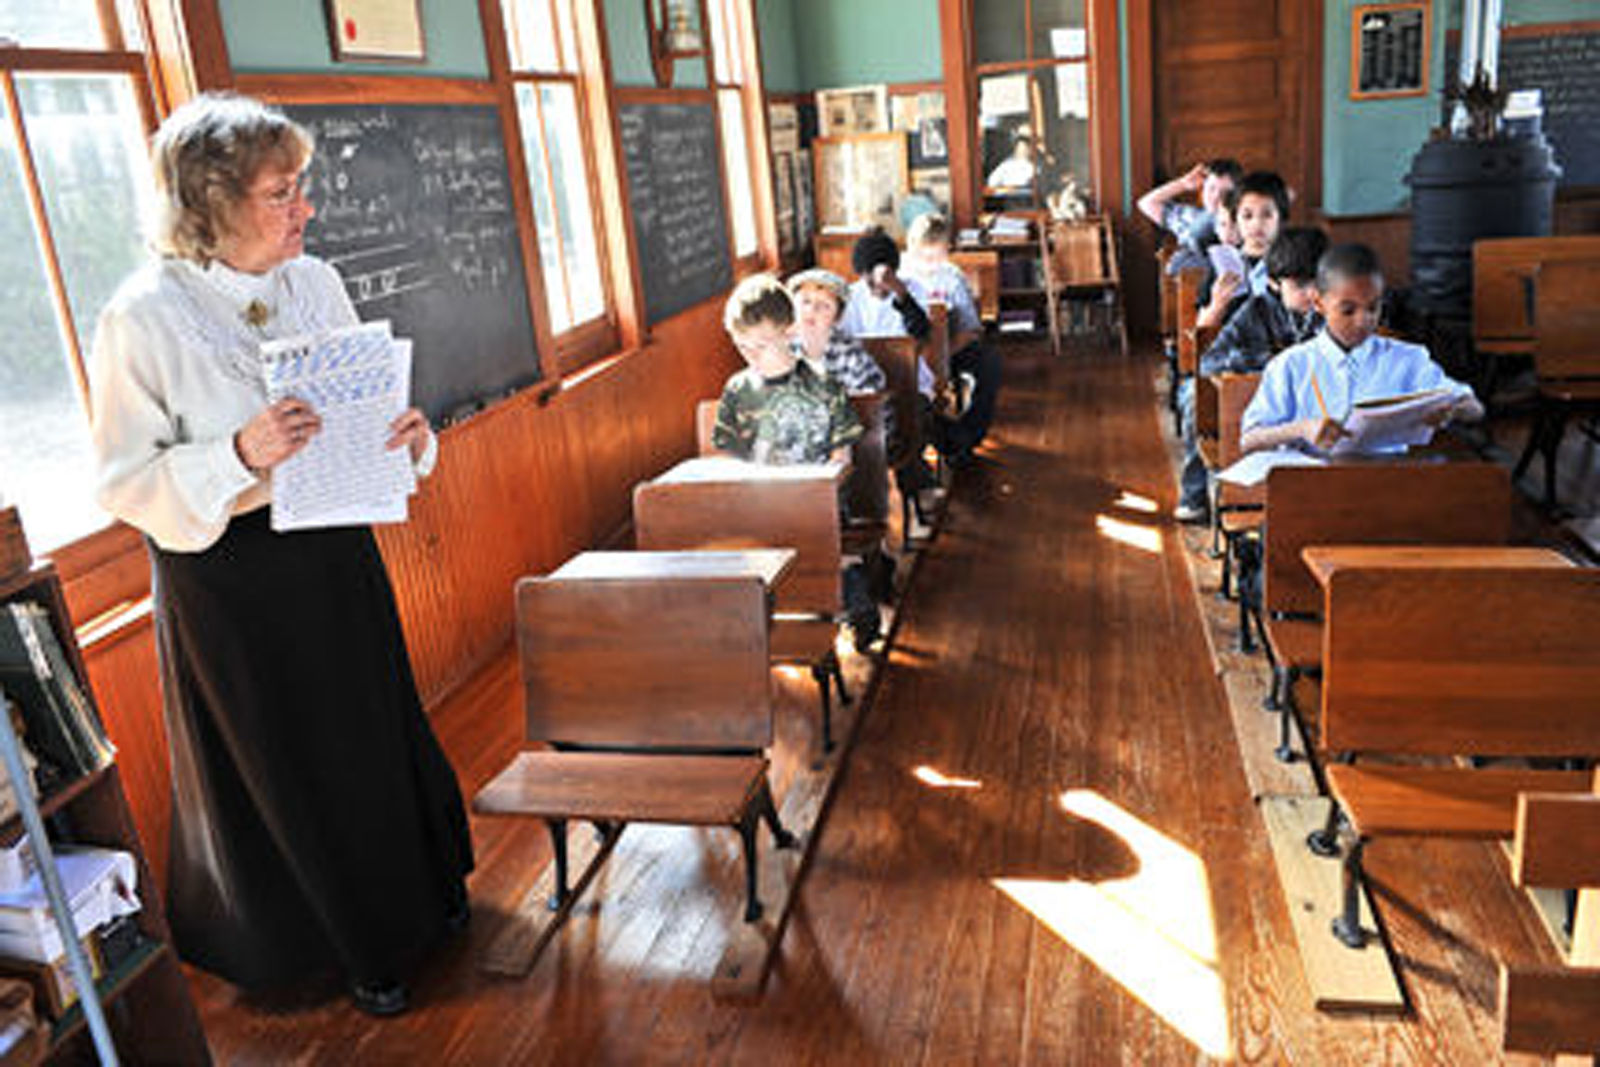 All Of The Volunteers In A Living History School Program At Pleasant Valley  Schools Are Retired Teachers, And The School And Its Historical Program  Exist ...